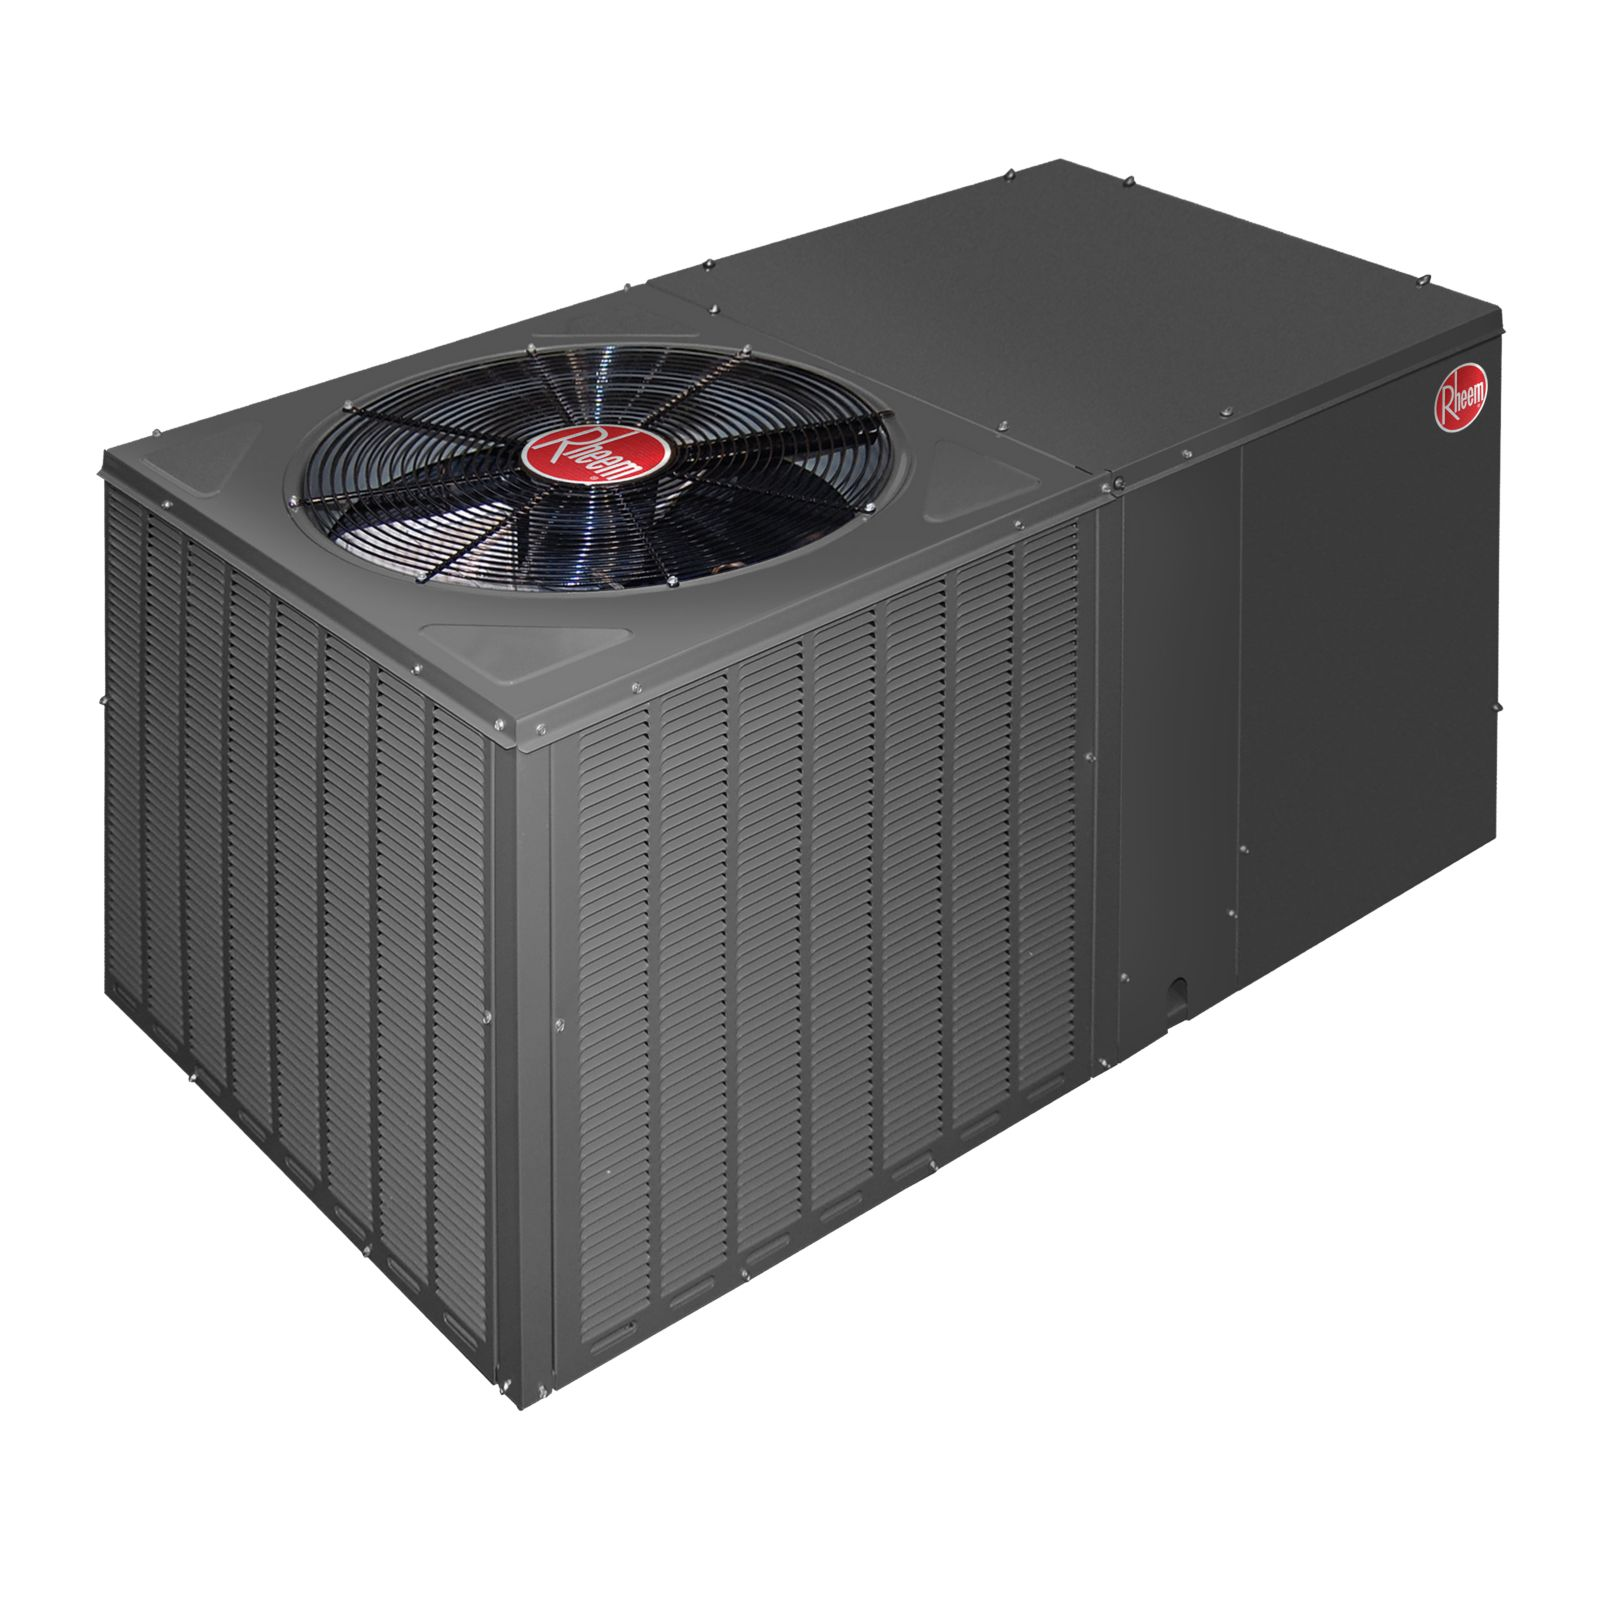 Rheem RQRM-A048JK000AUA - Classic 4 Ton 15/16 SEER, R-410A, Packaged Heat Pump With Horizontal Discharge, 208-230V, 1 Phase